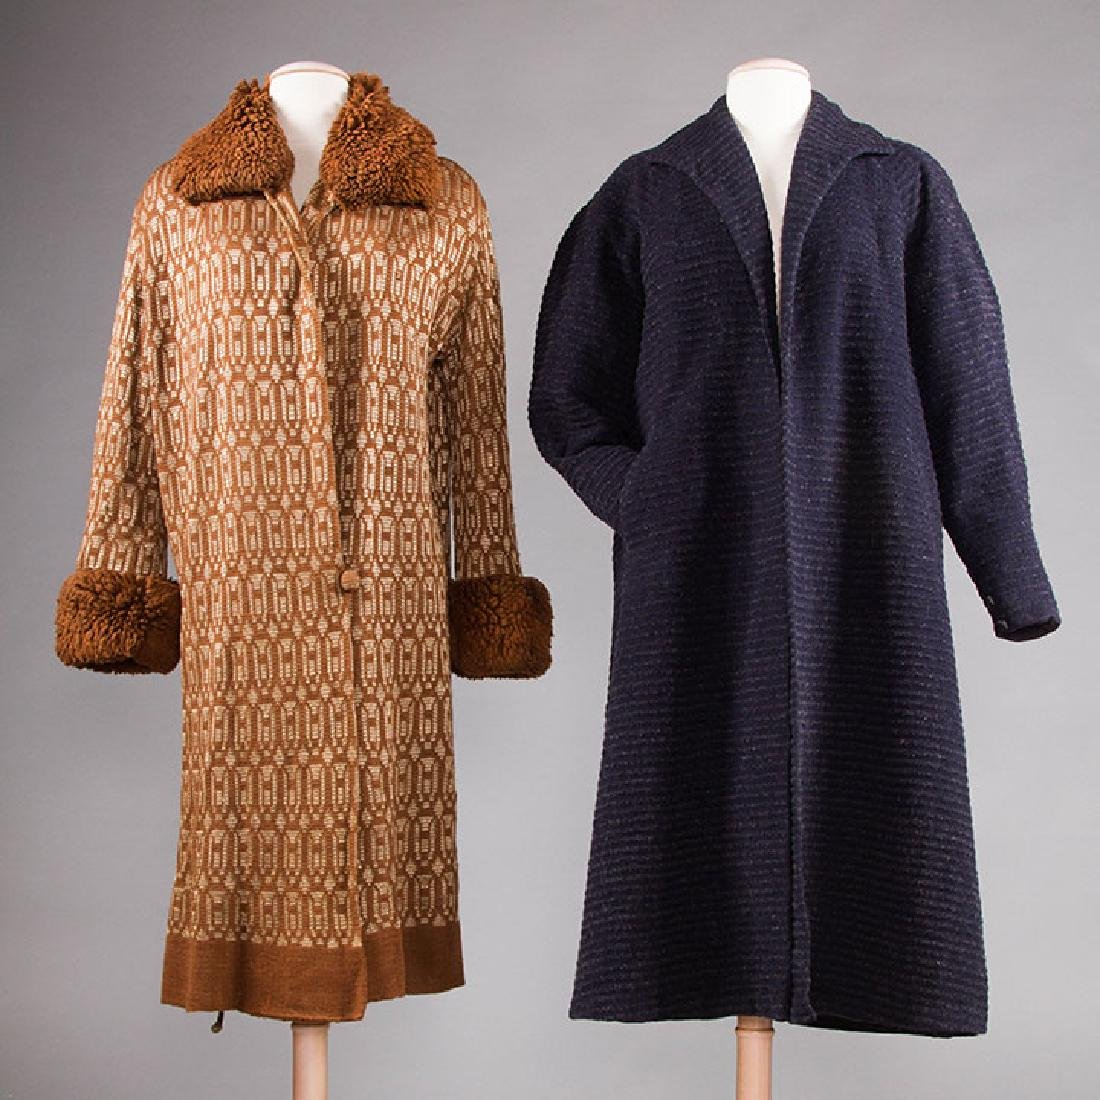 2 WOOL DAY COATS, 1920s & 1930s